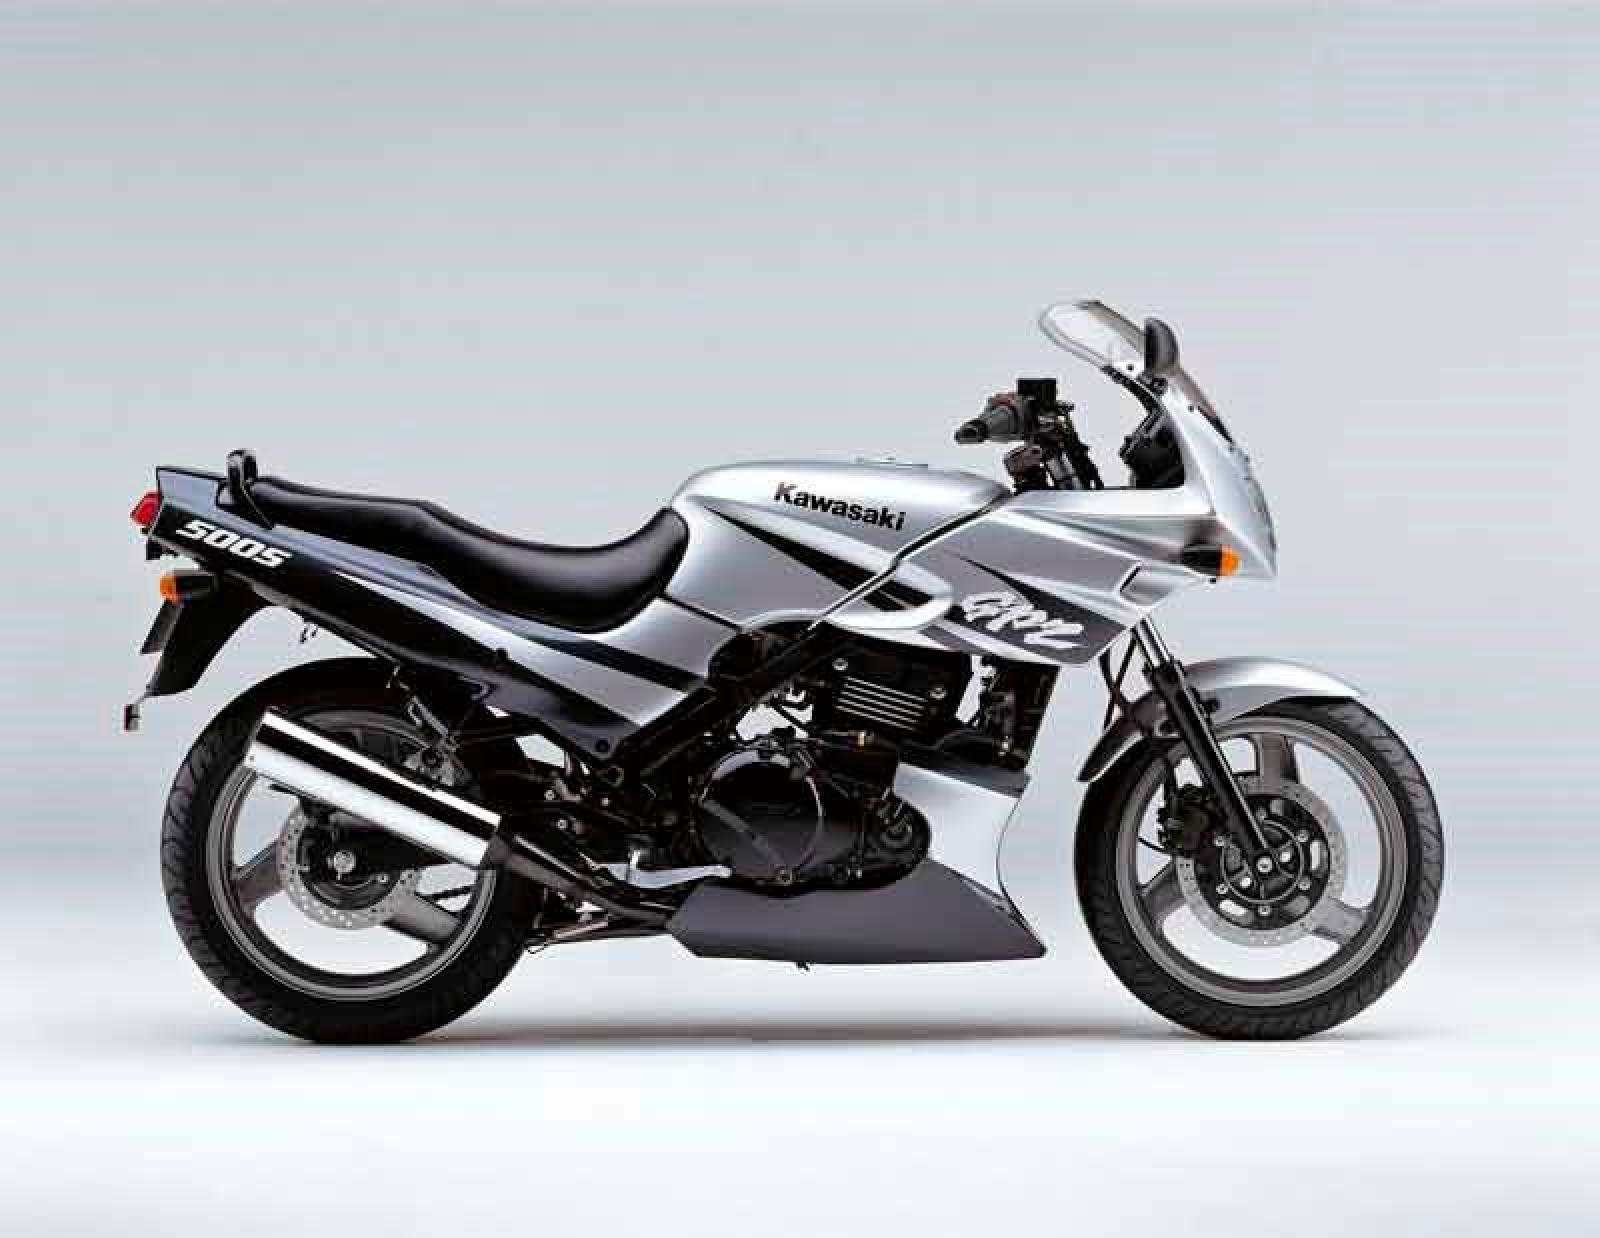 2004 kawasaki gpz 500 s pics specs and information. Black Bedroom Furniture Sets. Home Design Ideas